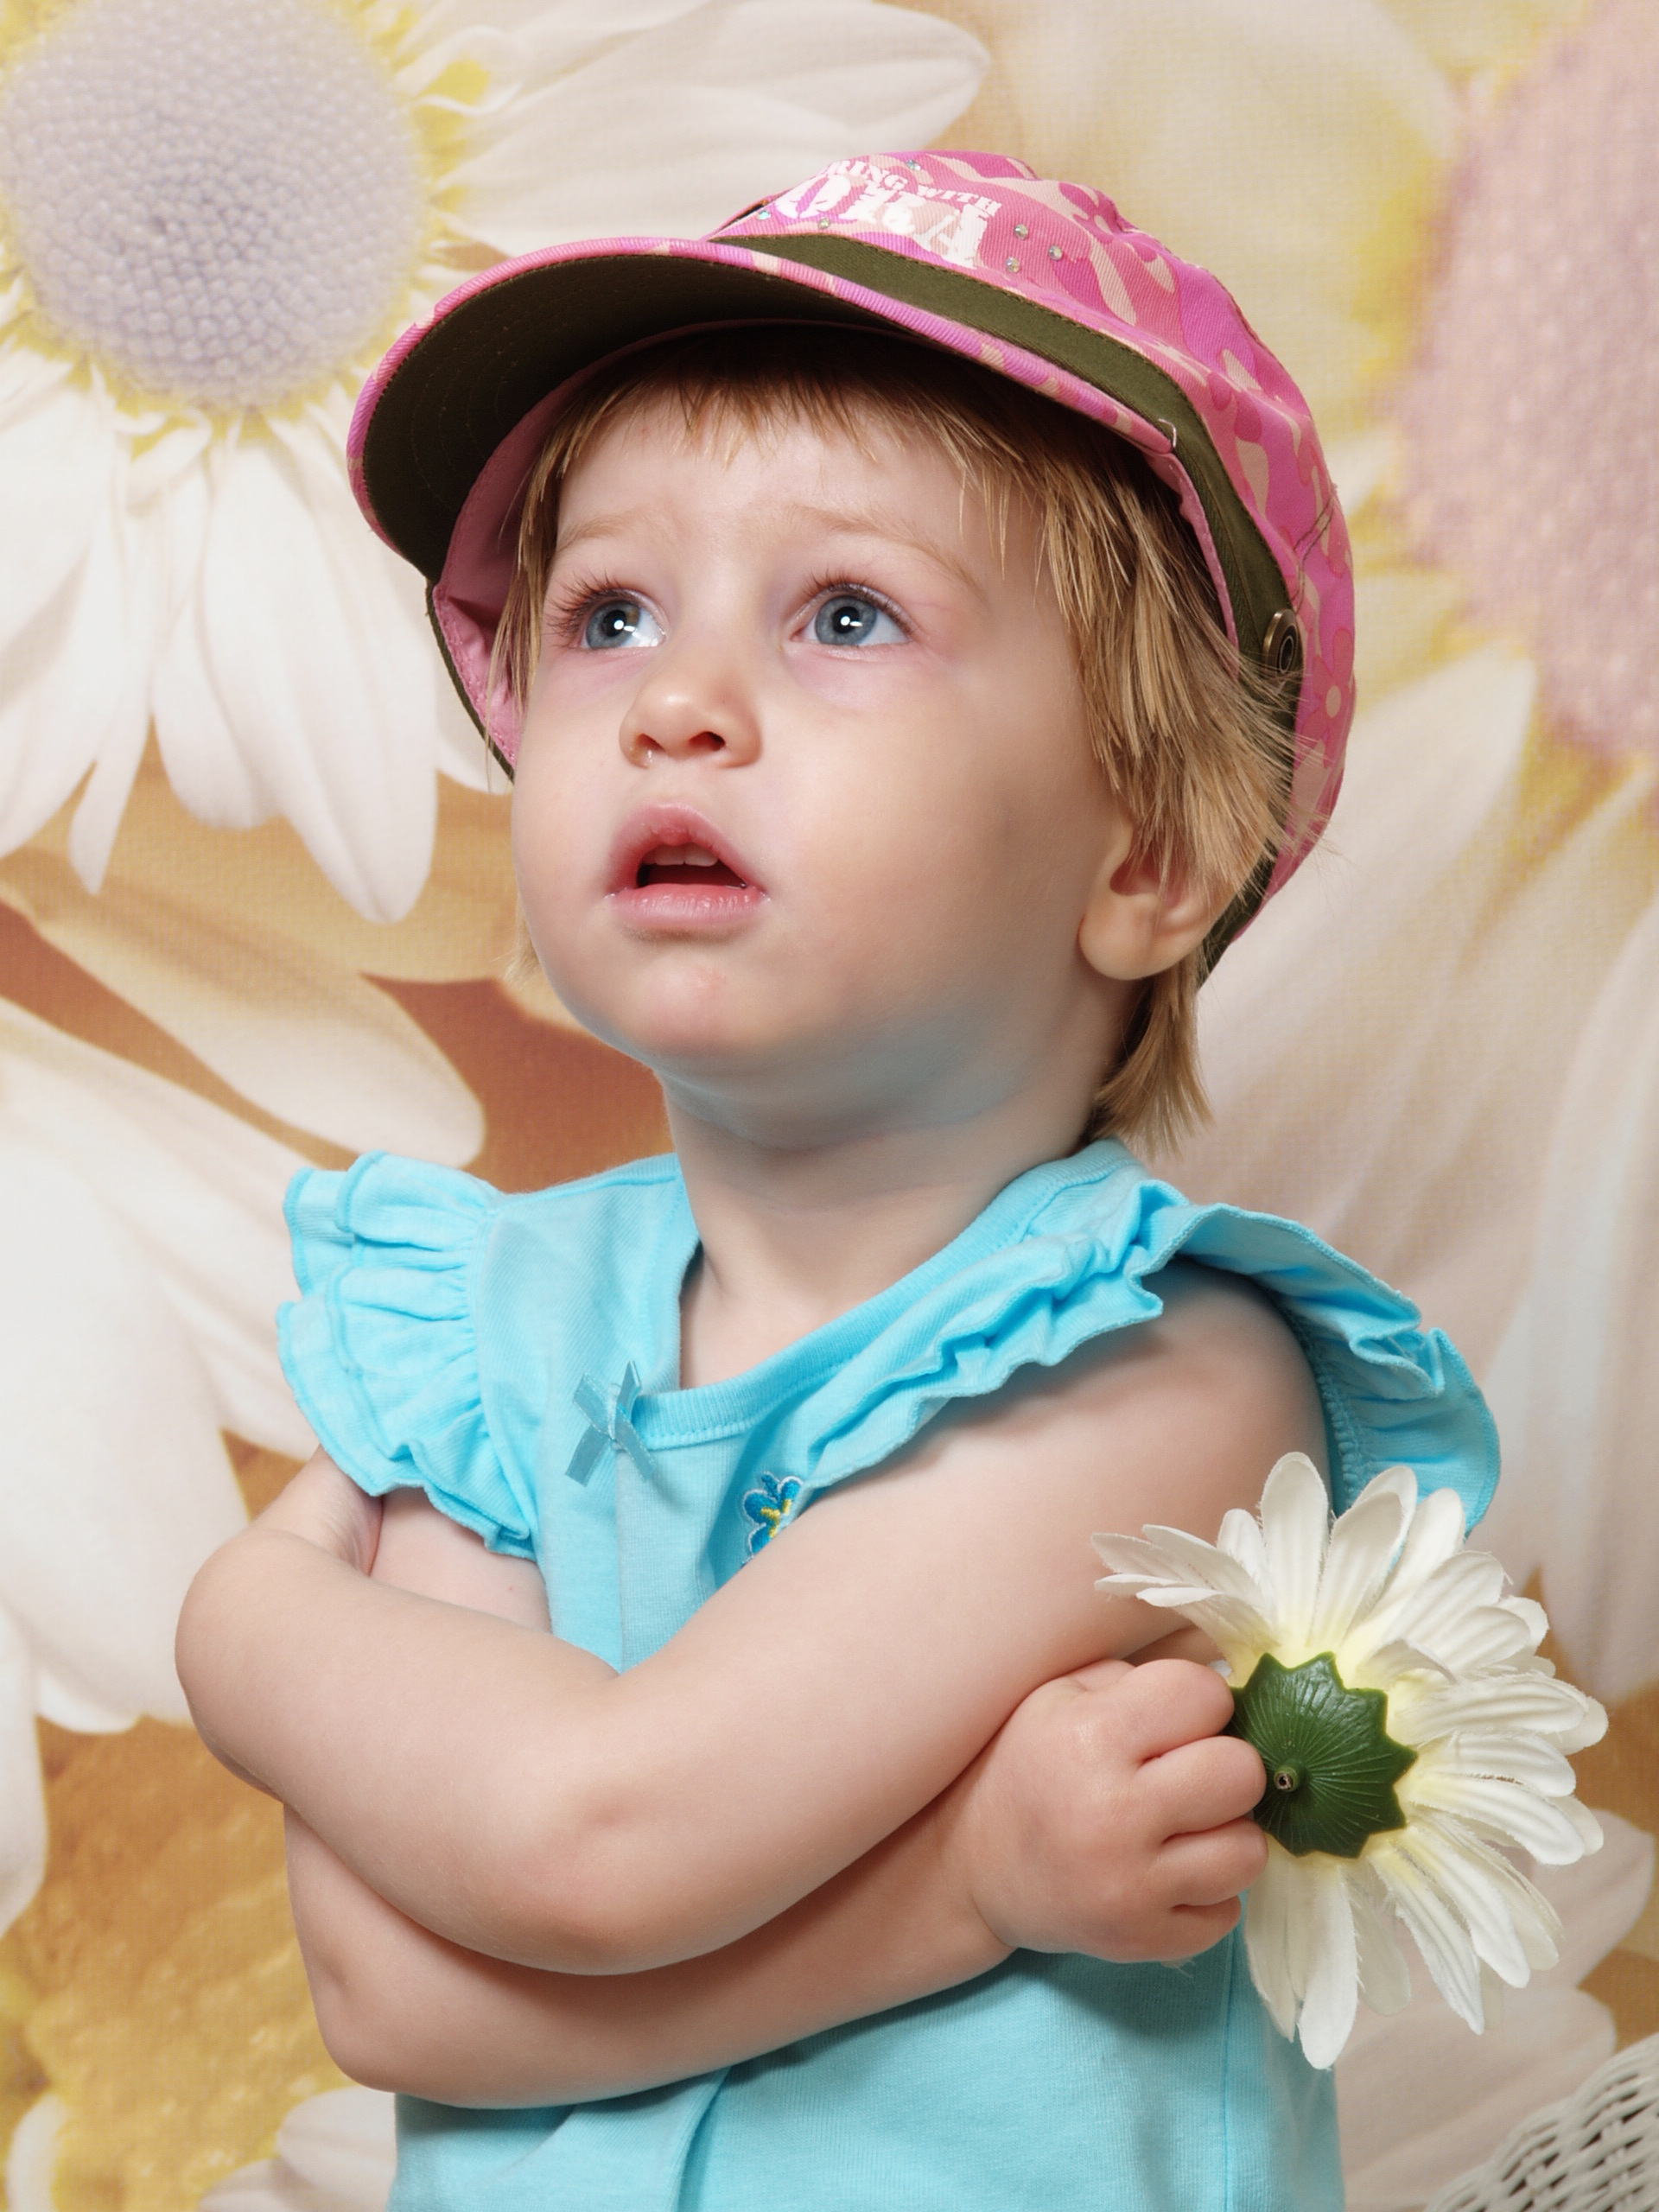 E in front of giant daisies with a hat, looking up, May 2007